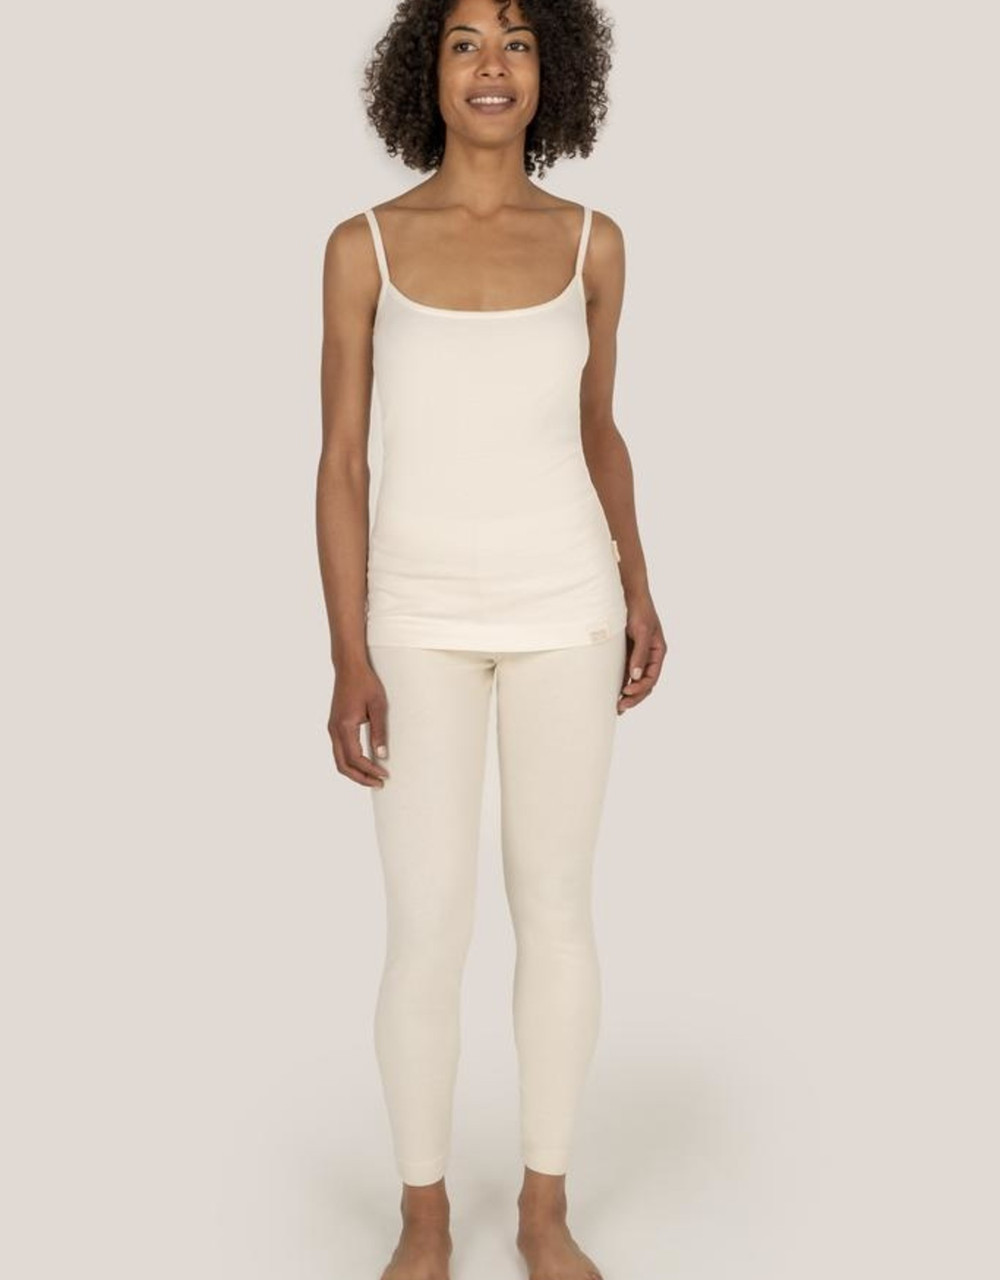 The outstanding quality, comfort, pureness and breathability of the cotton makes it ideal for people who suffer from psoriasis, rashes, itching, allergies, dermatitis, eczema and other skin disorders